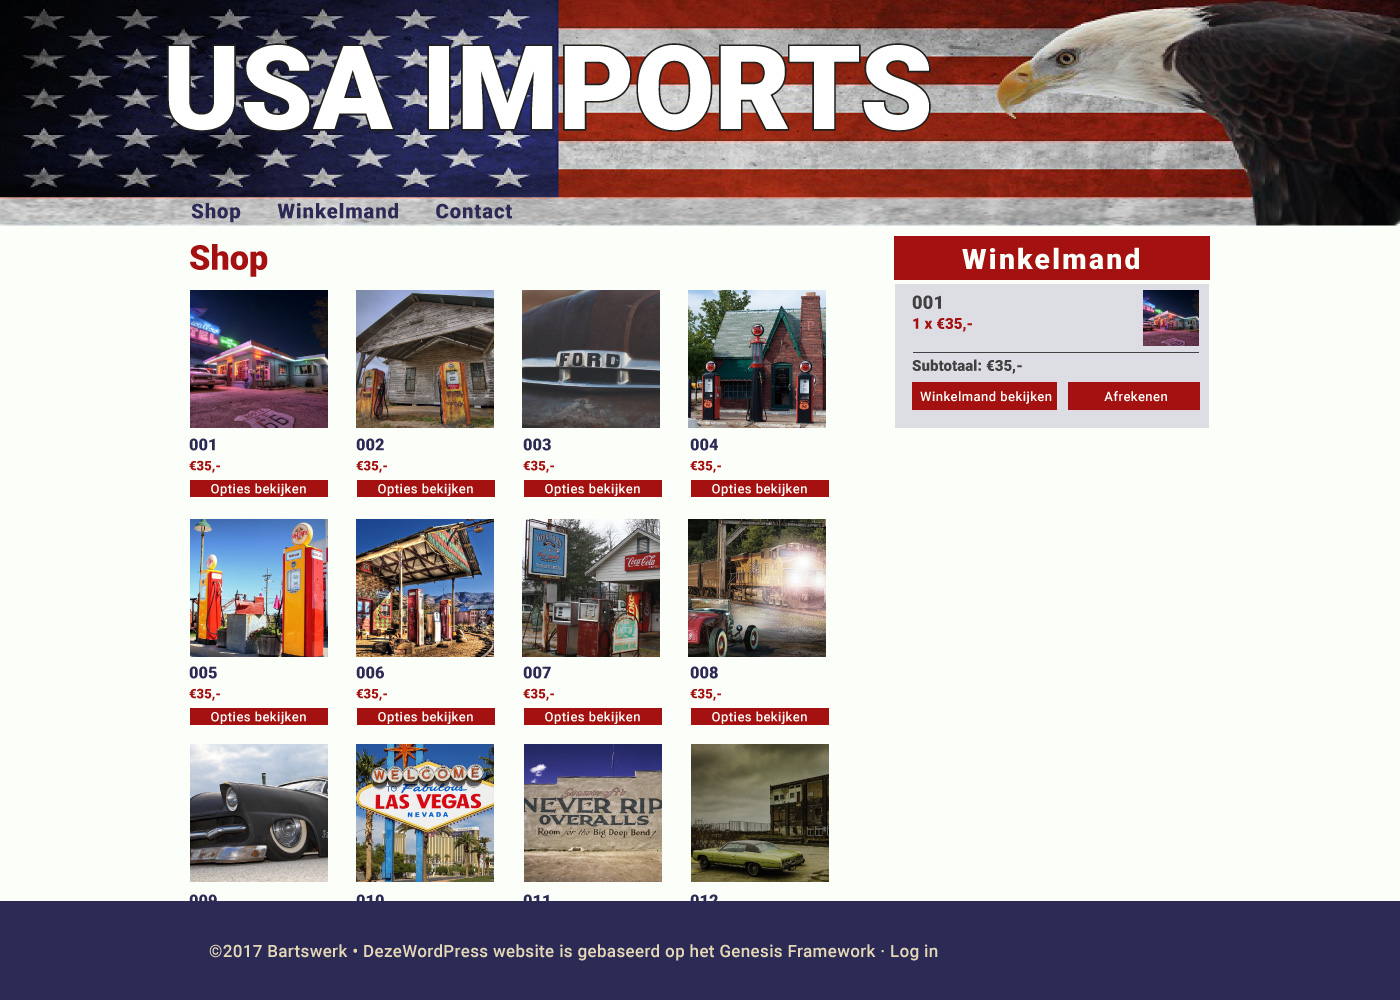 USA-imports website